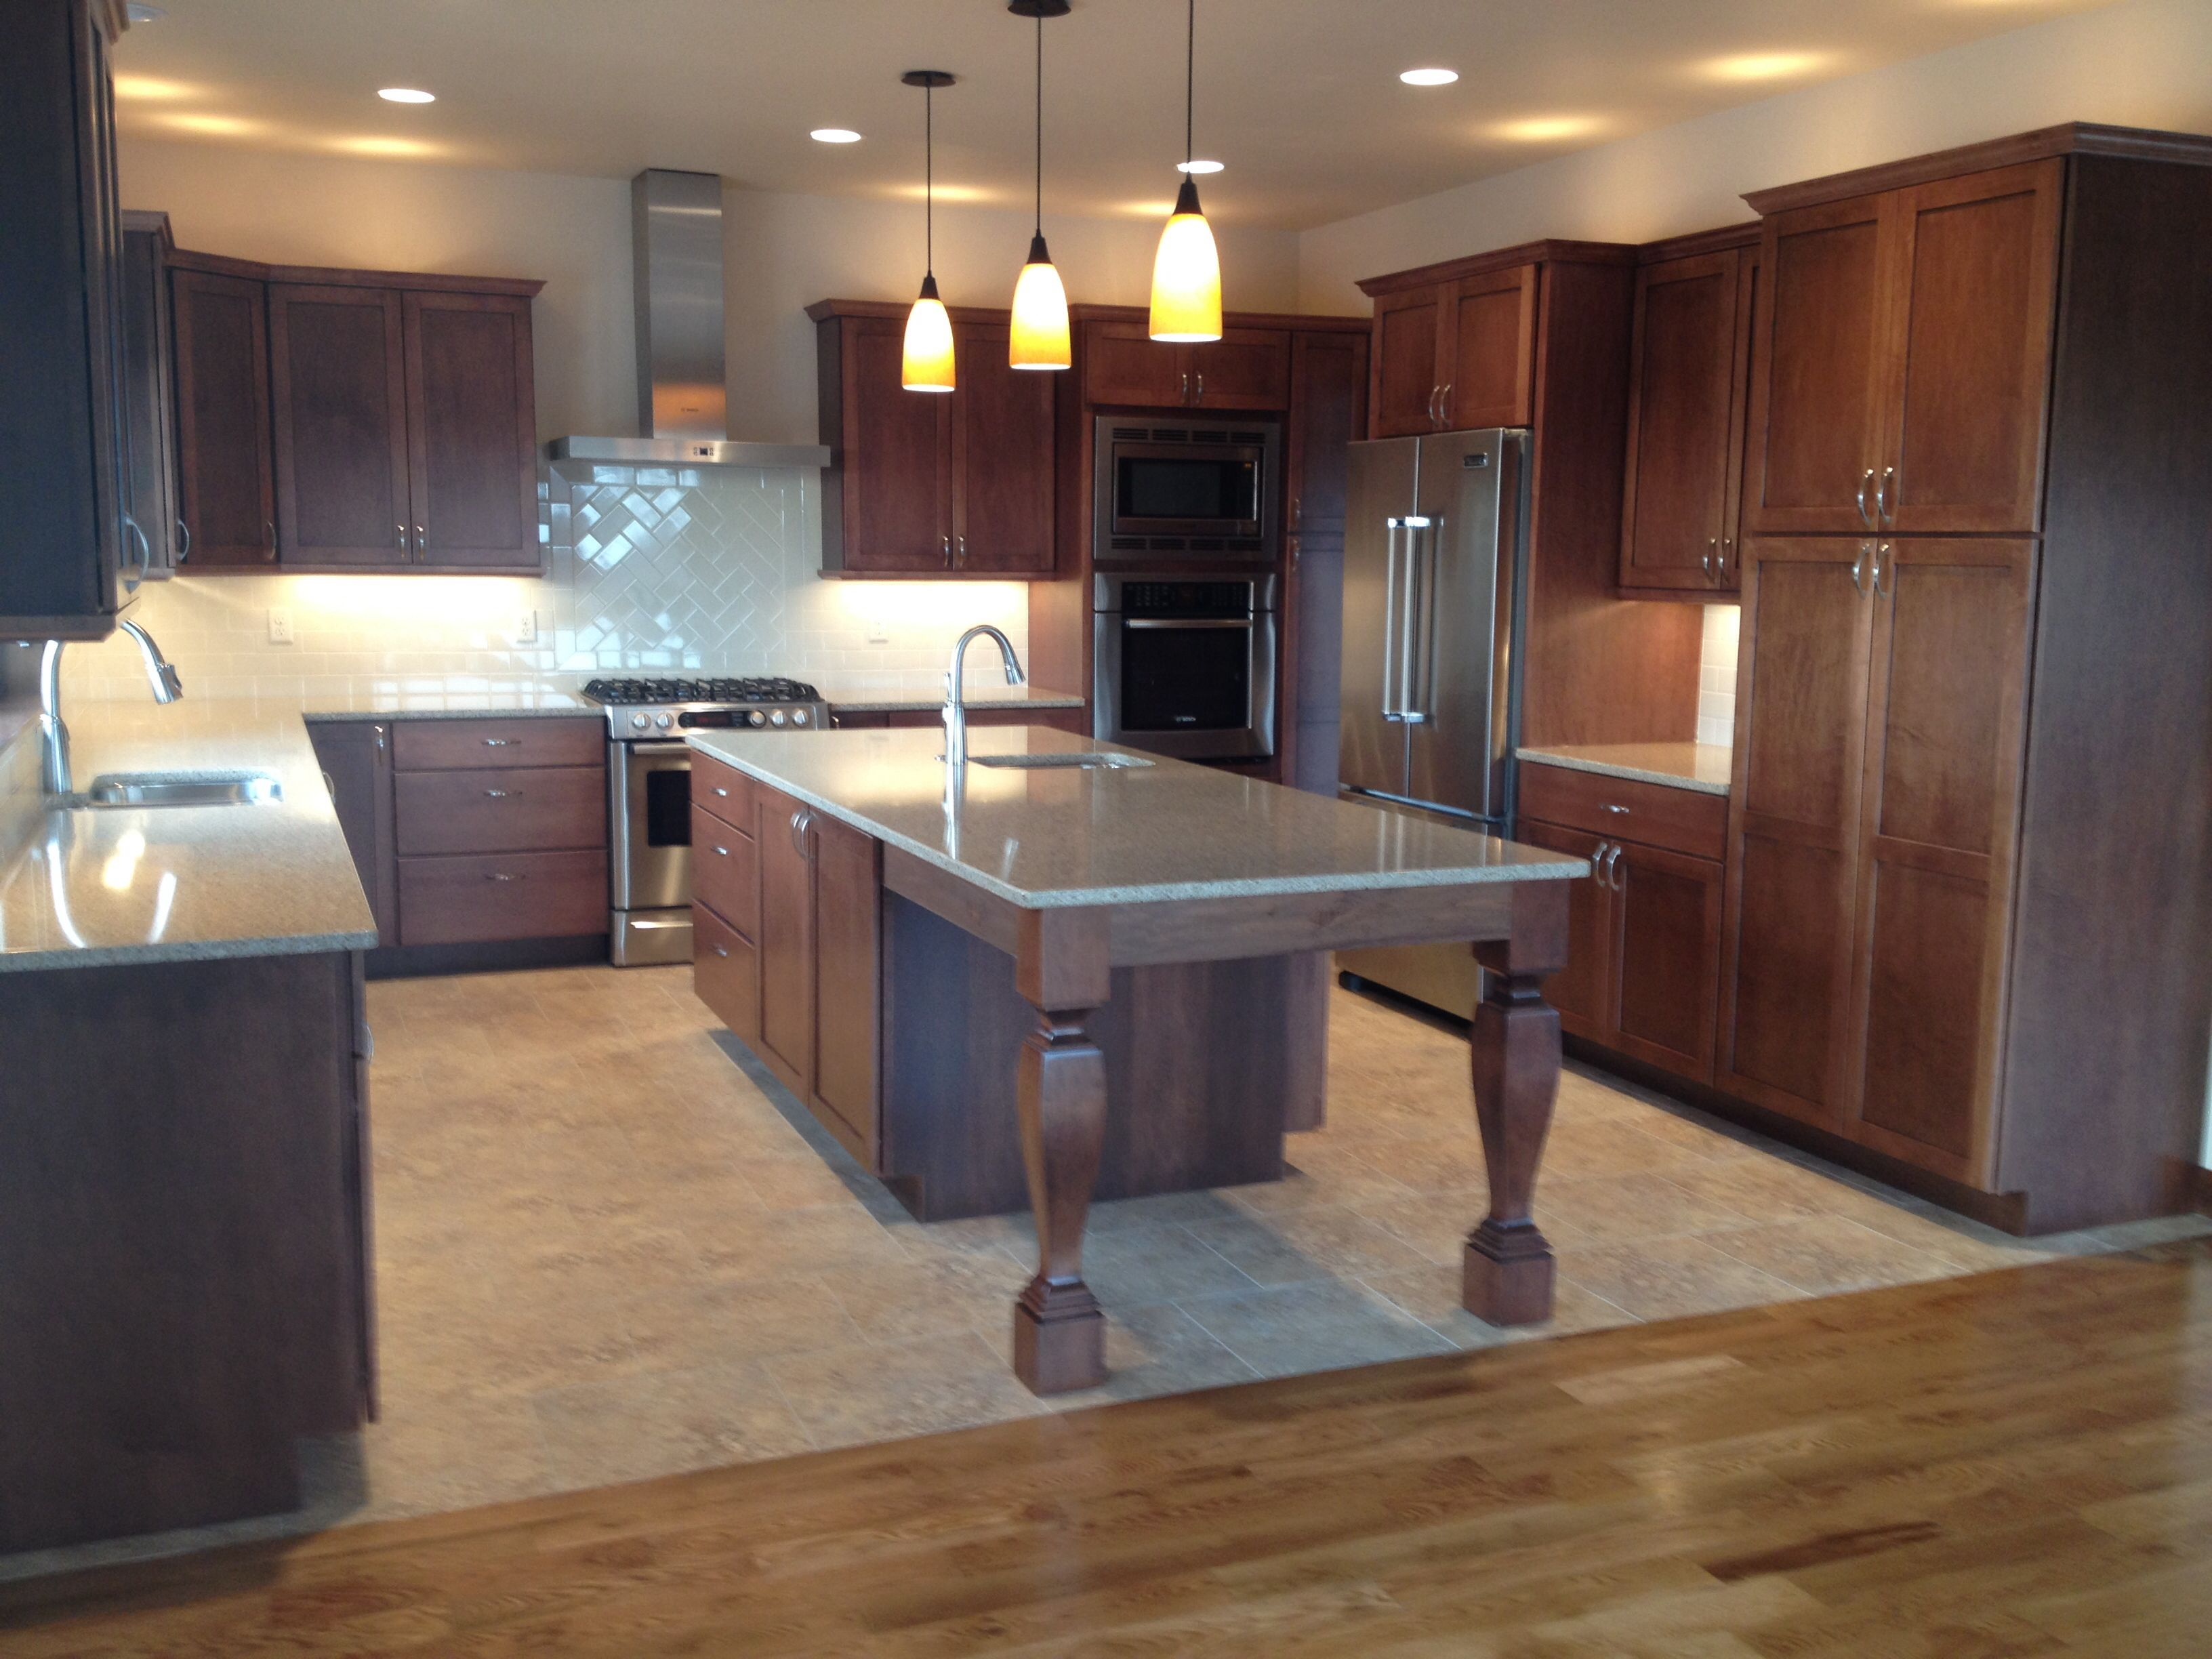 Grouted luxury vinyl tile flooring in kitchen meeting sand